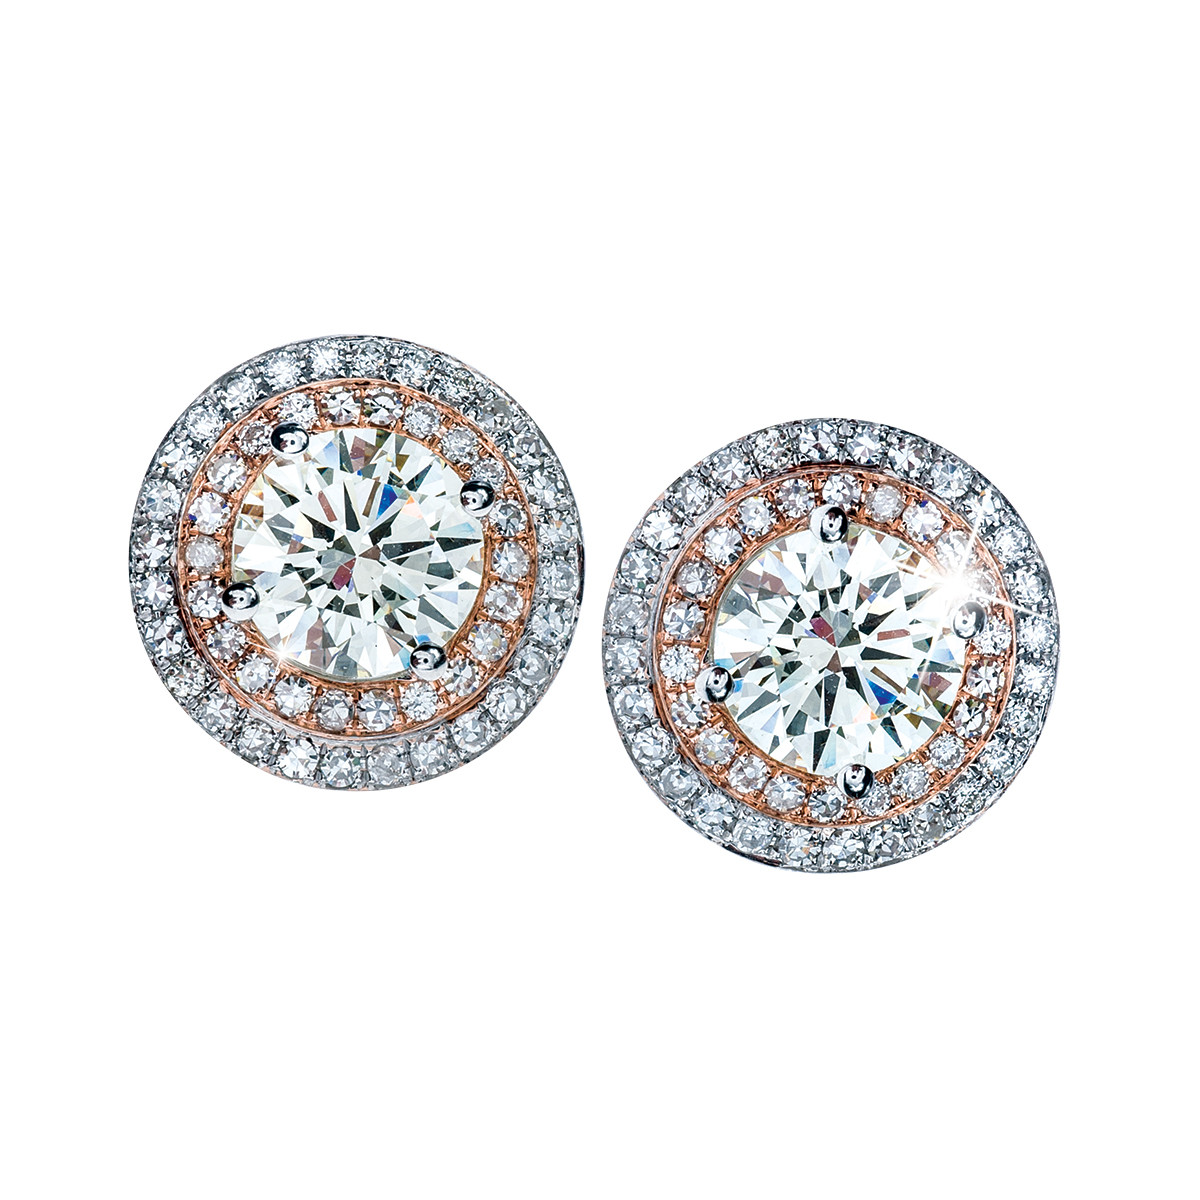 5.08 CTW Diamond Double Halo Earrings